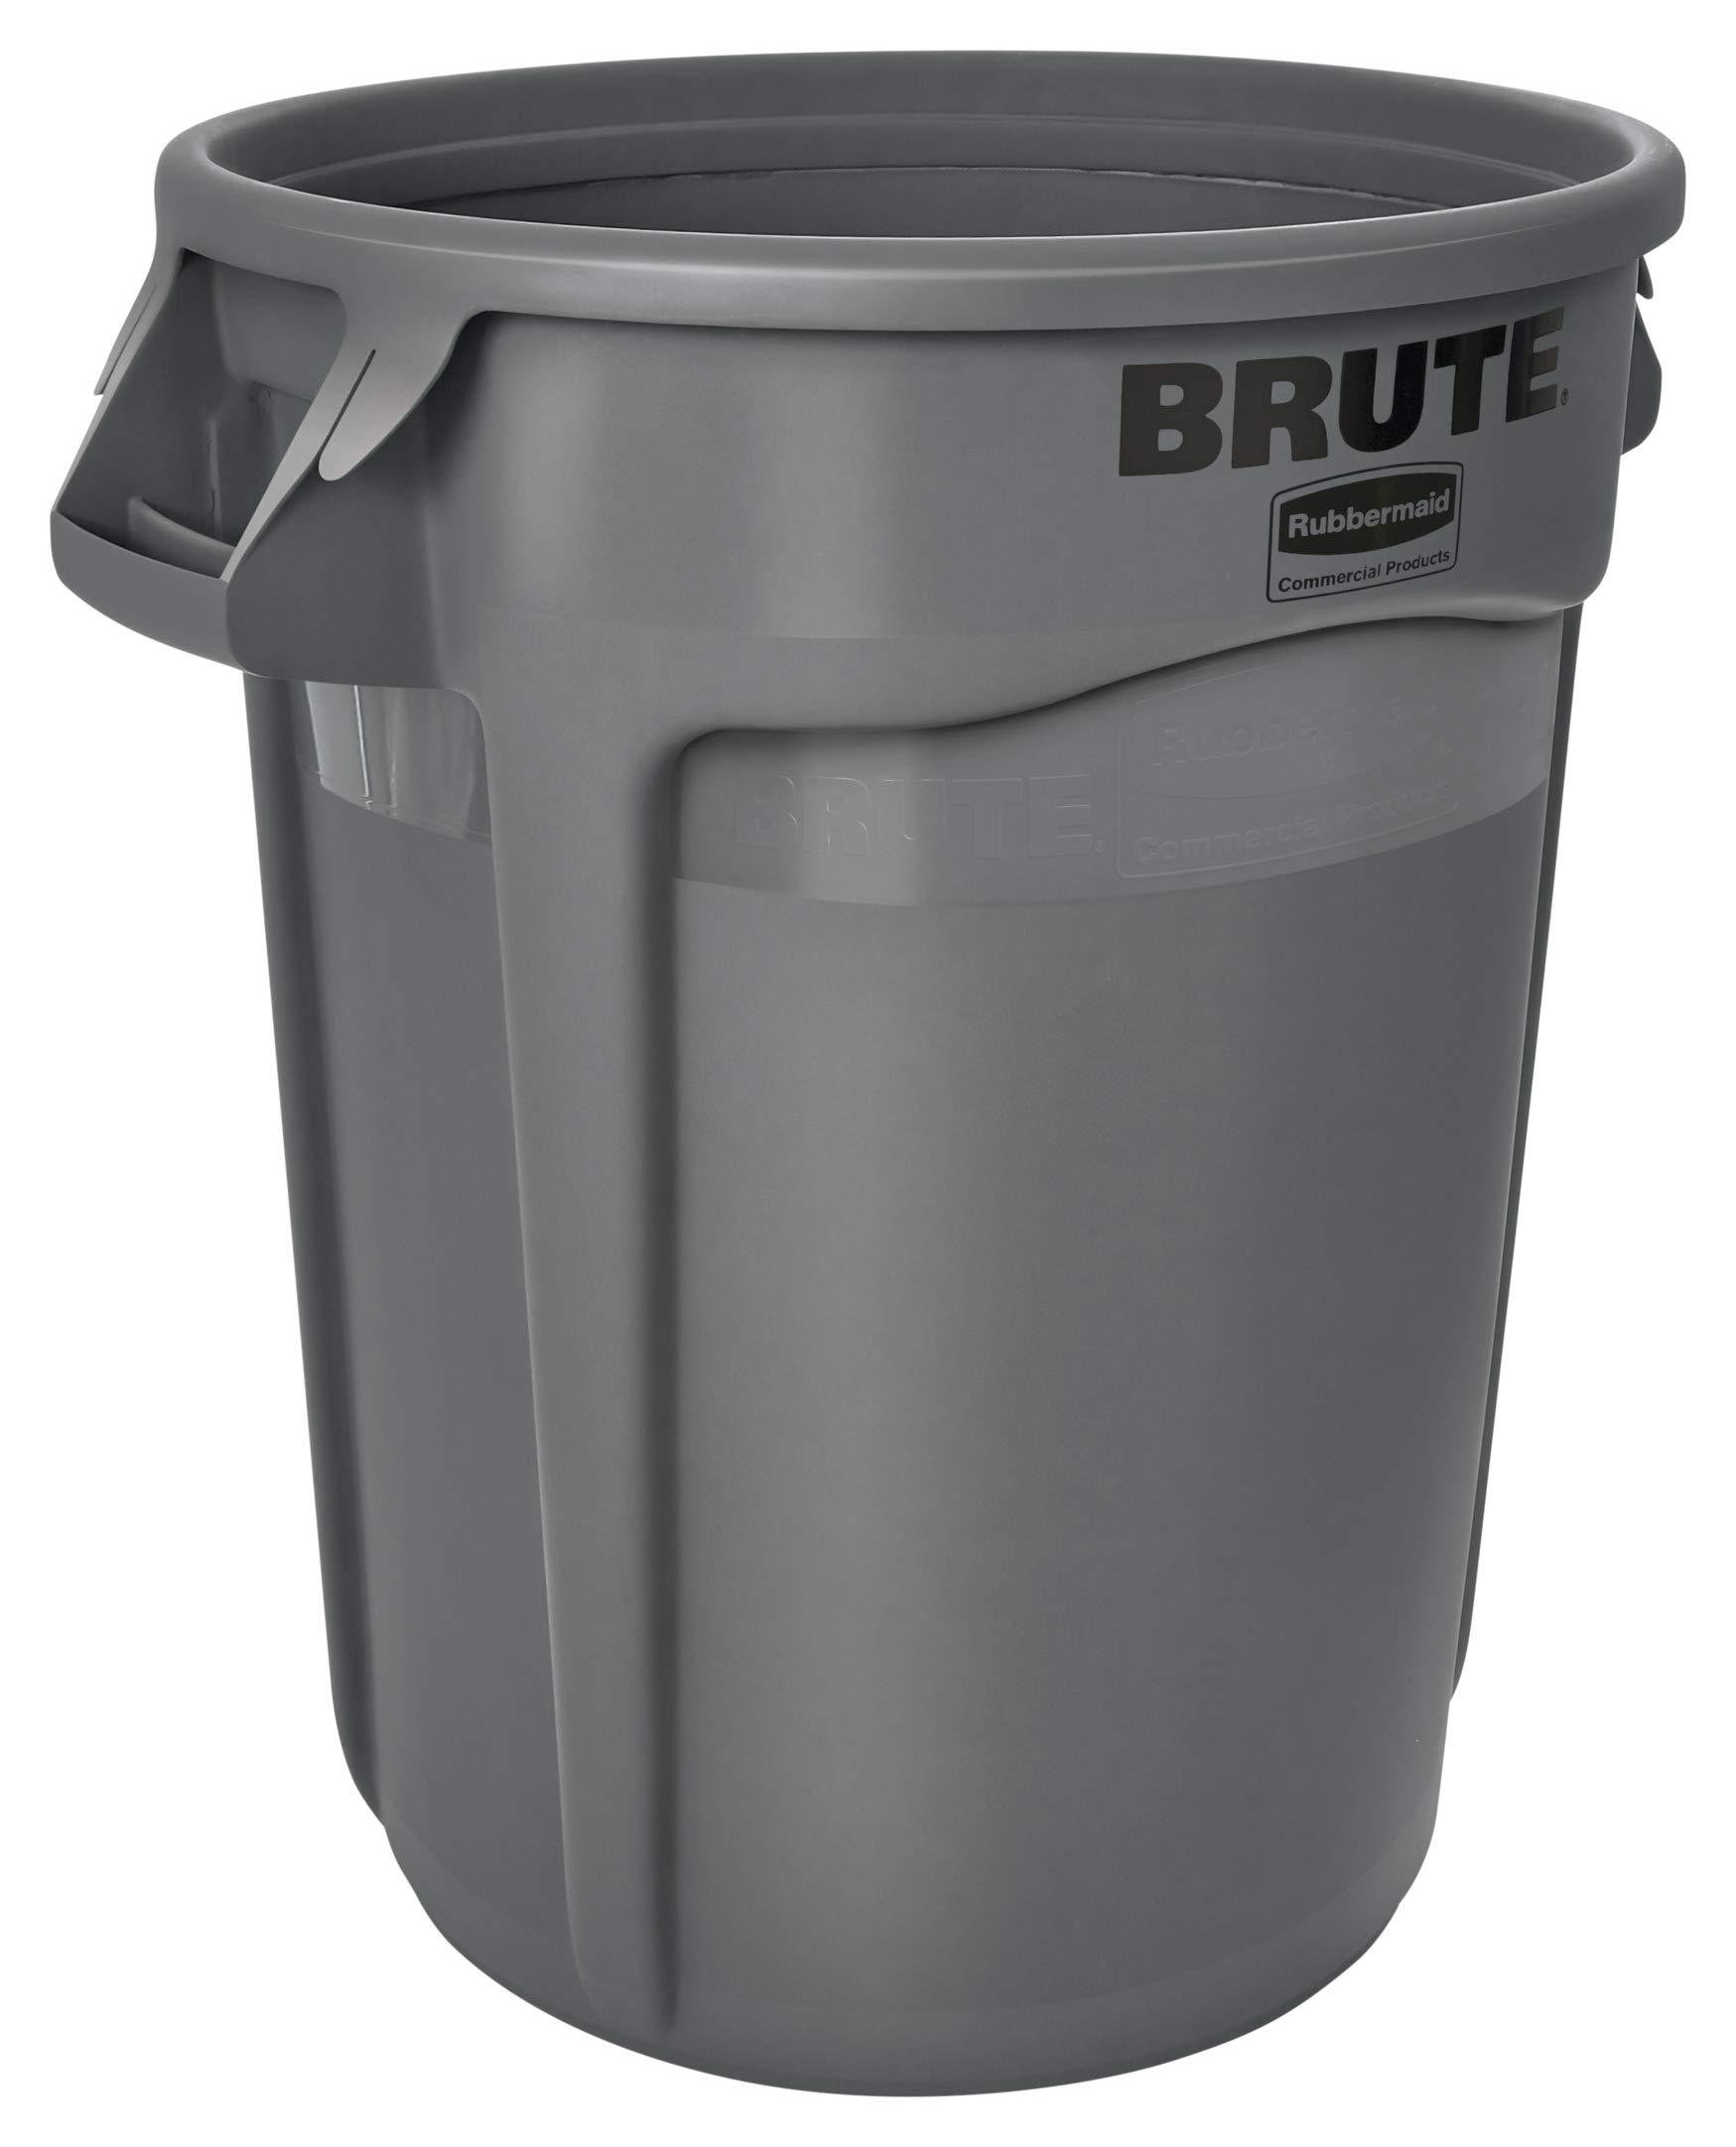 Rubbermaid Commercial Products FG263200GRAY BRUTE Heavy-Duty Round Trash/Garbage Can, 32-Gallon, Gray